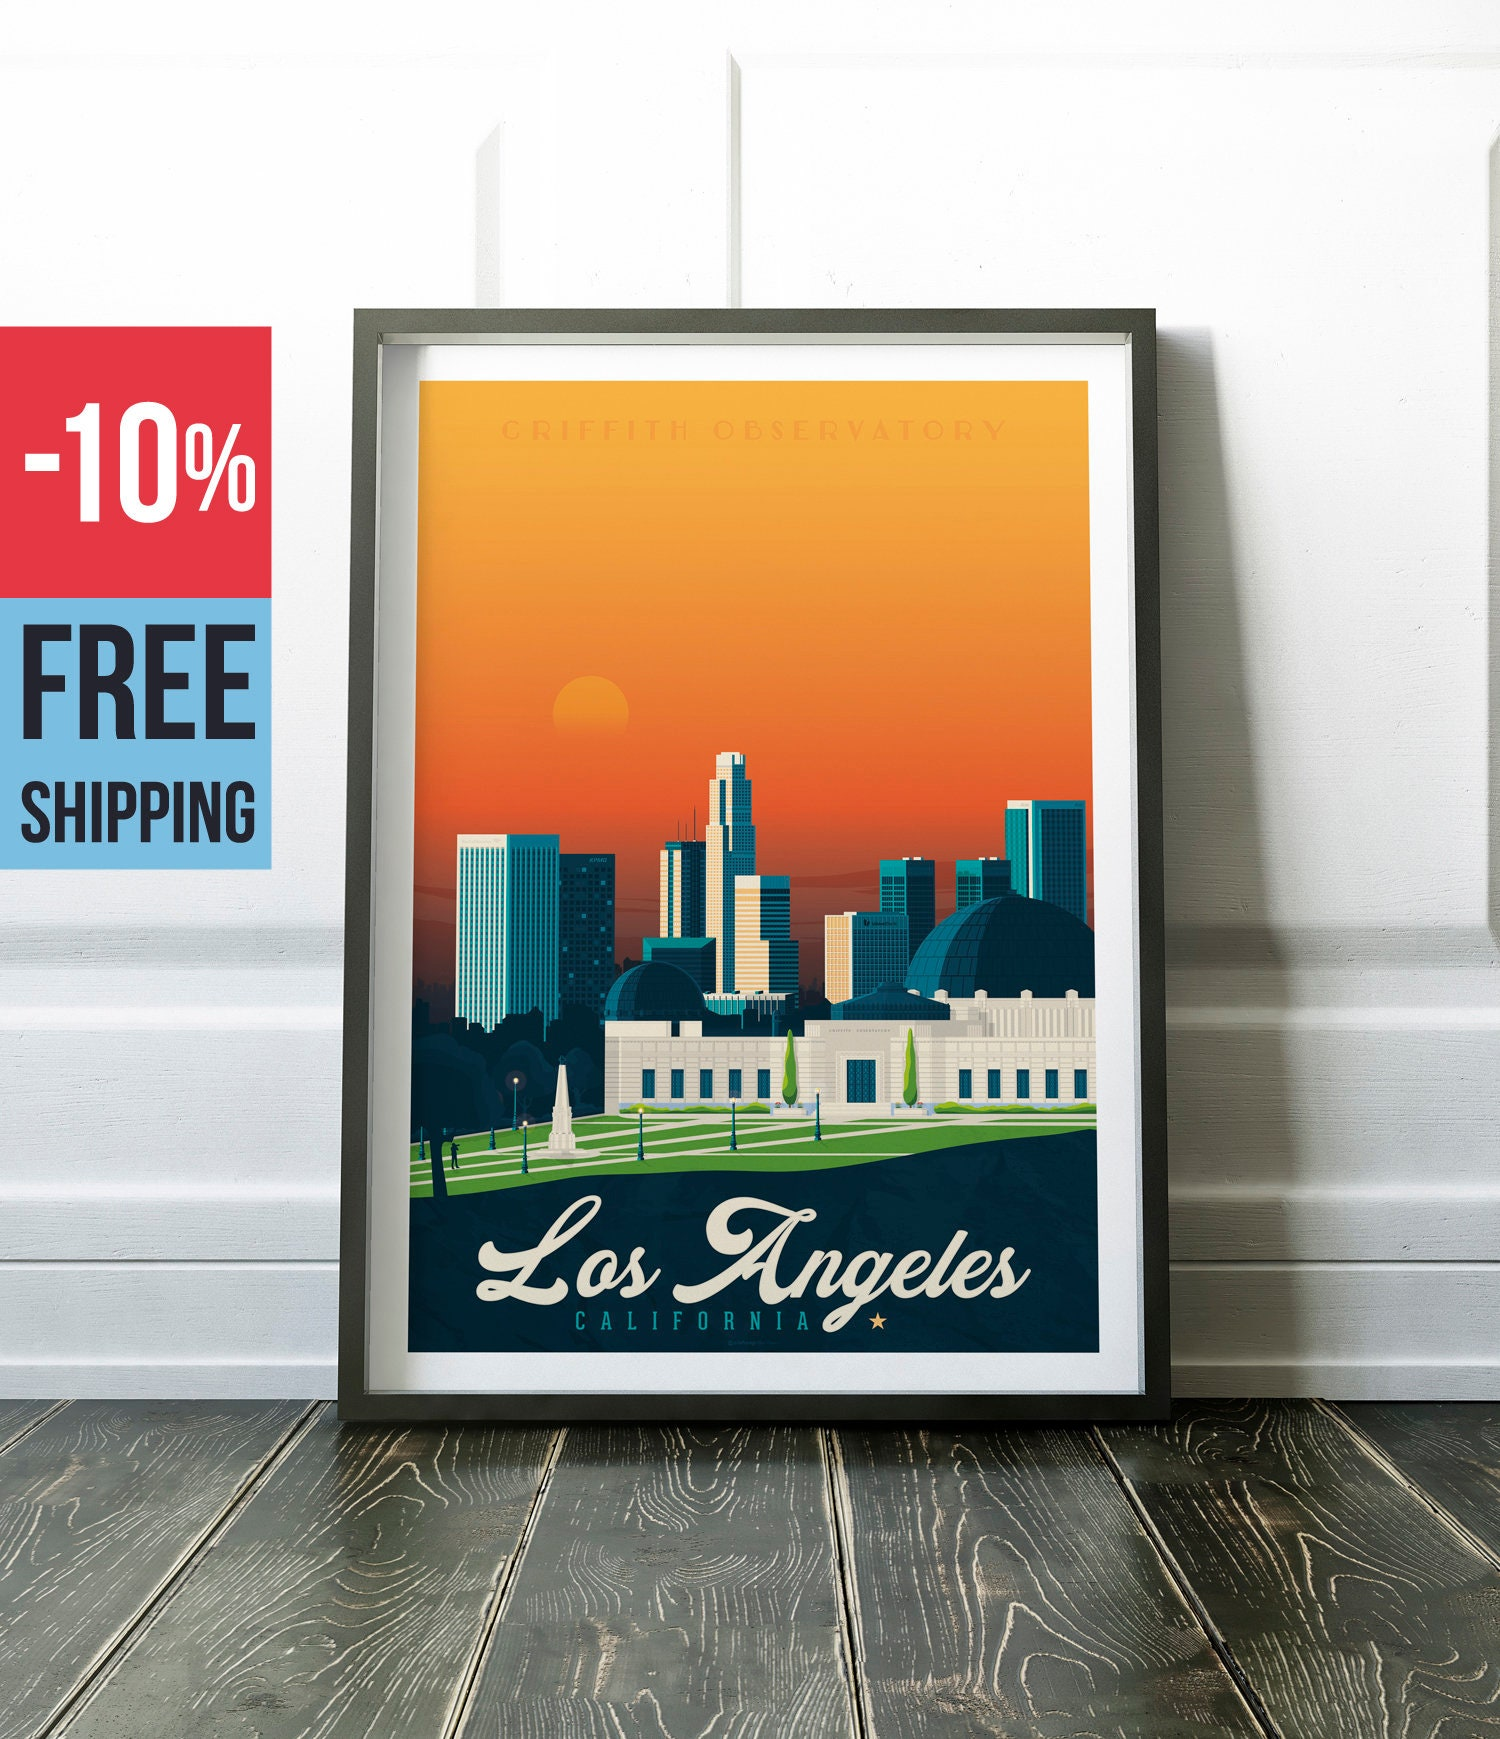 Los Angeles California USA America Vintage Travel Poster, vintage ...